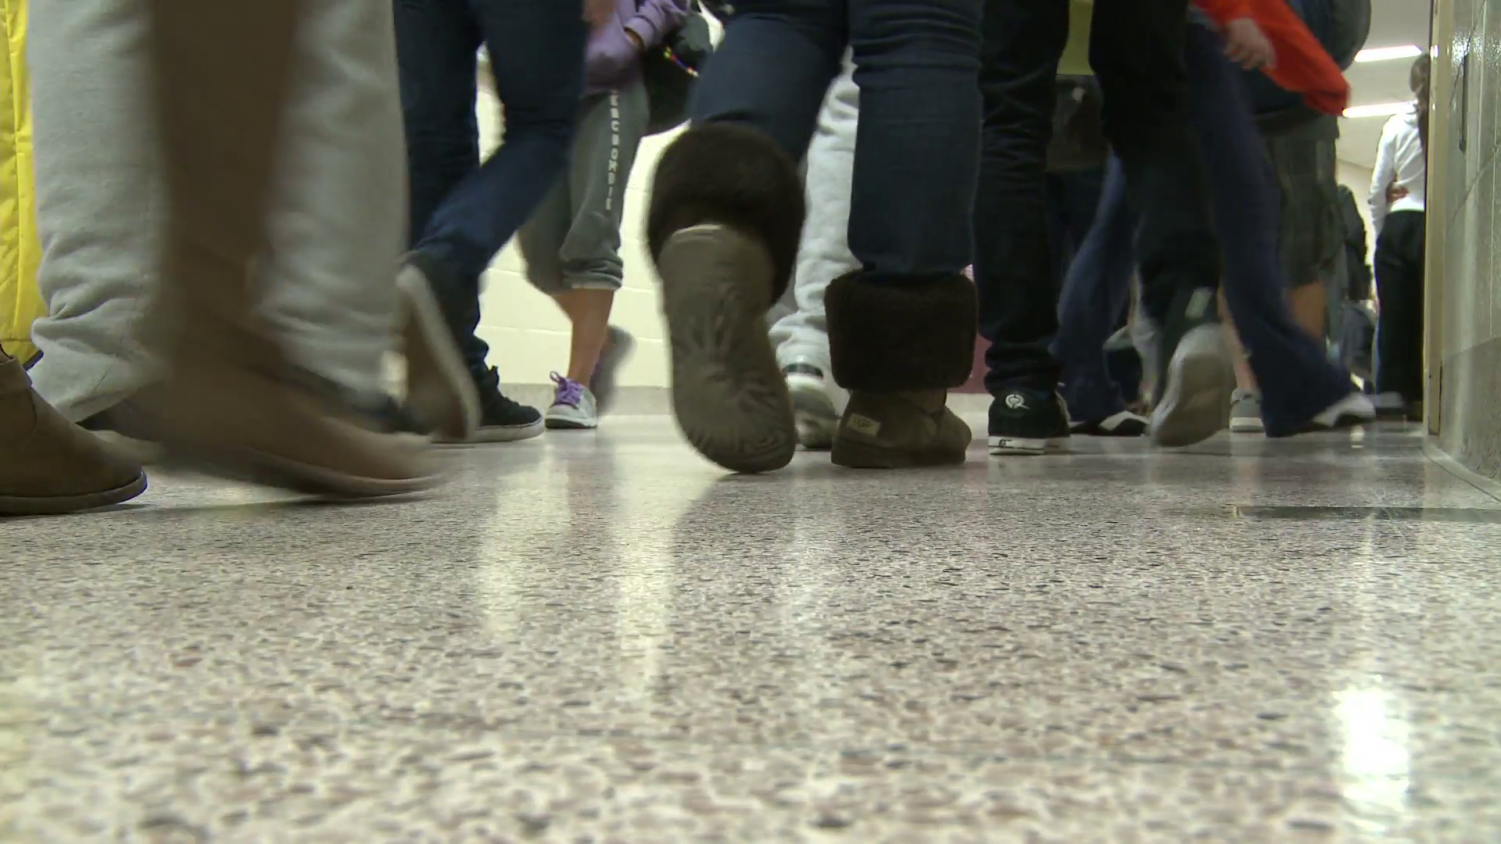 Image Credit: https://www.videoblocks.com/video/students-walking-in-hallway-3-of-4-gj6x5ea